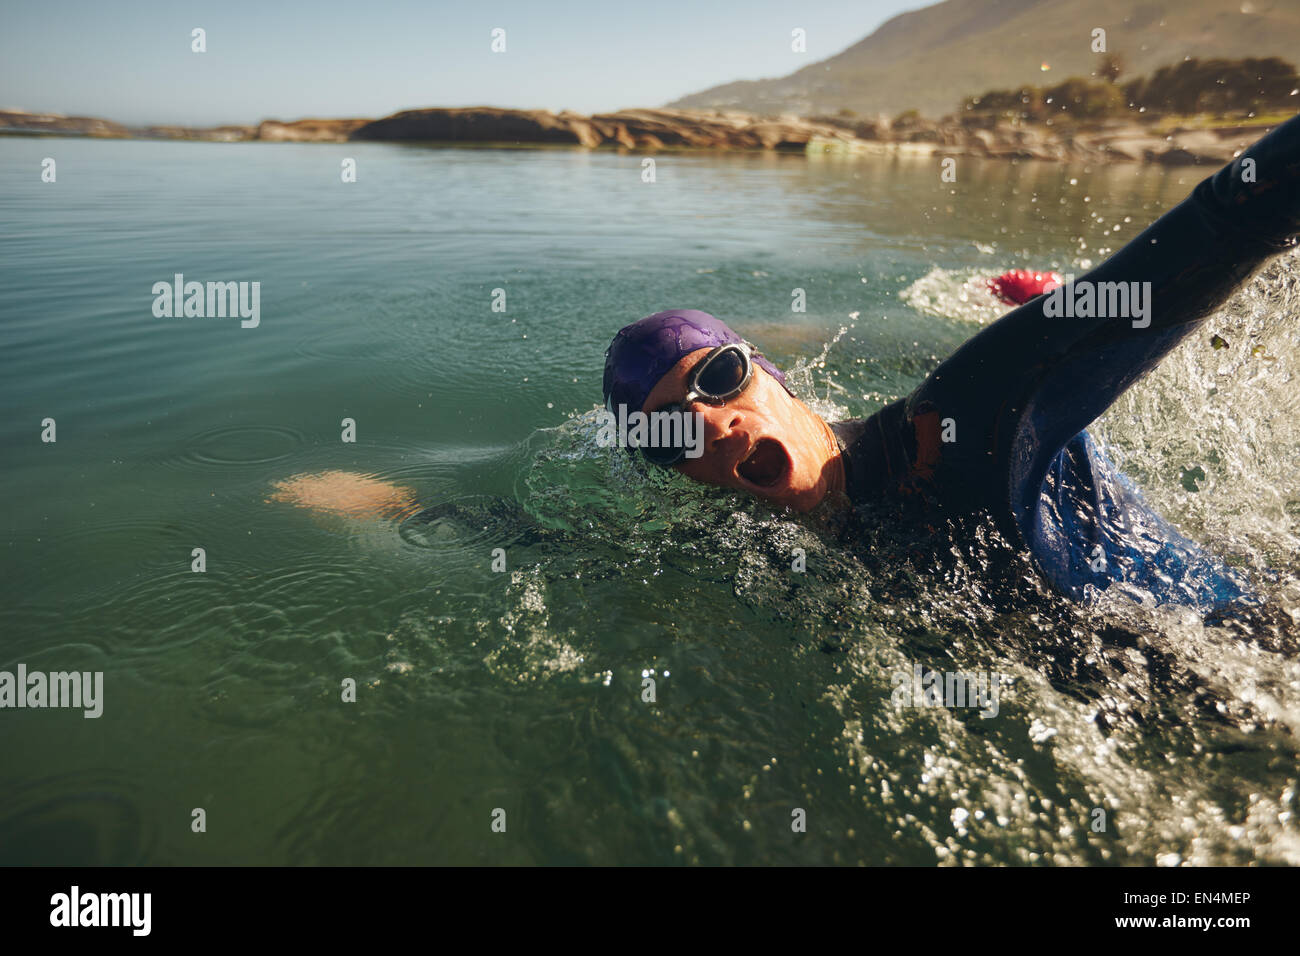 Open water swimming. Male athlete swimming in lake. Triathlon long distance swimming. - Stock Image